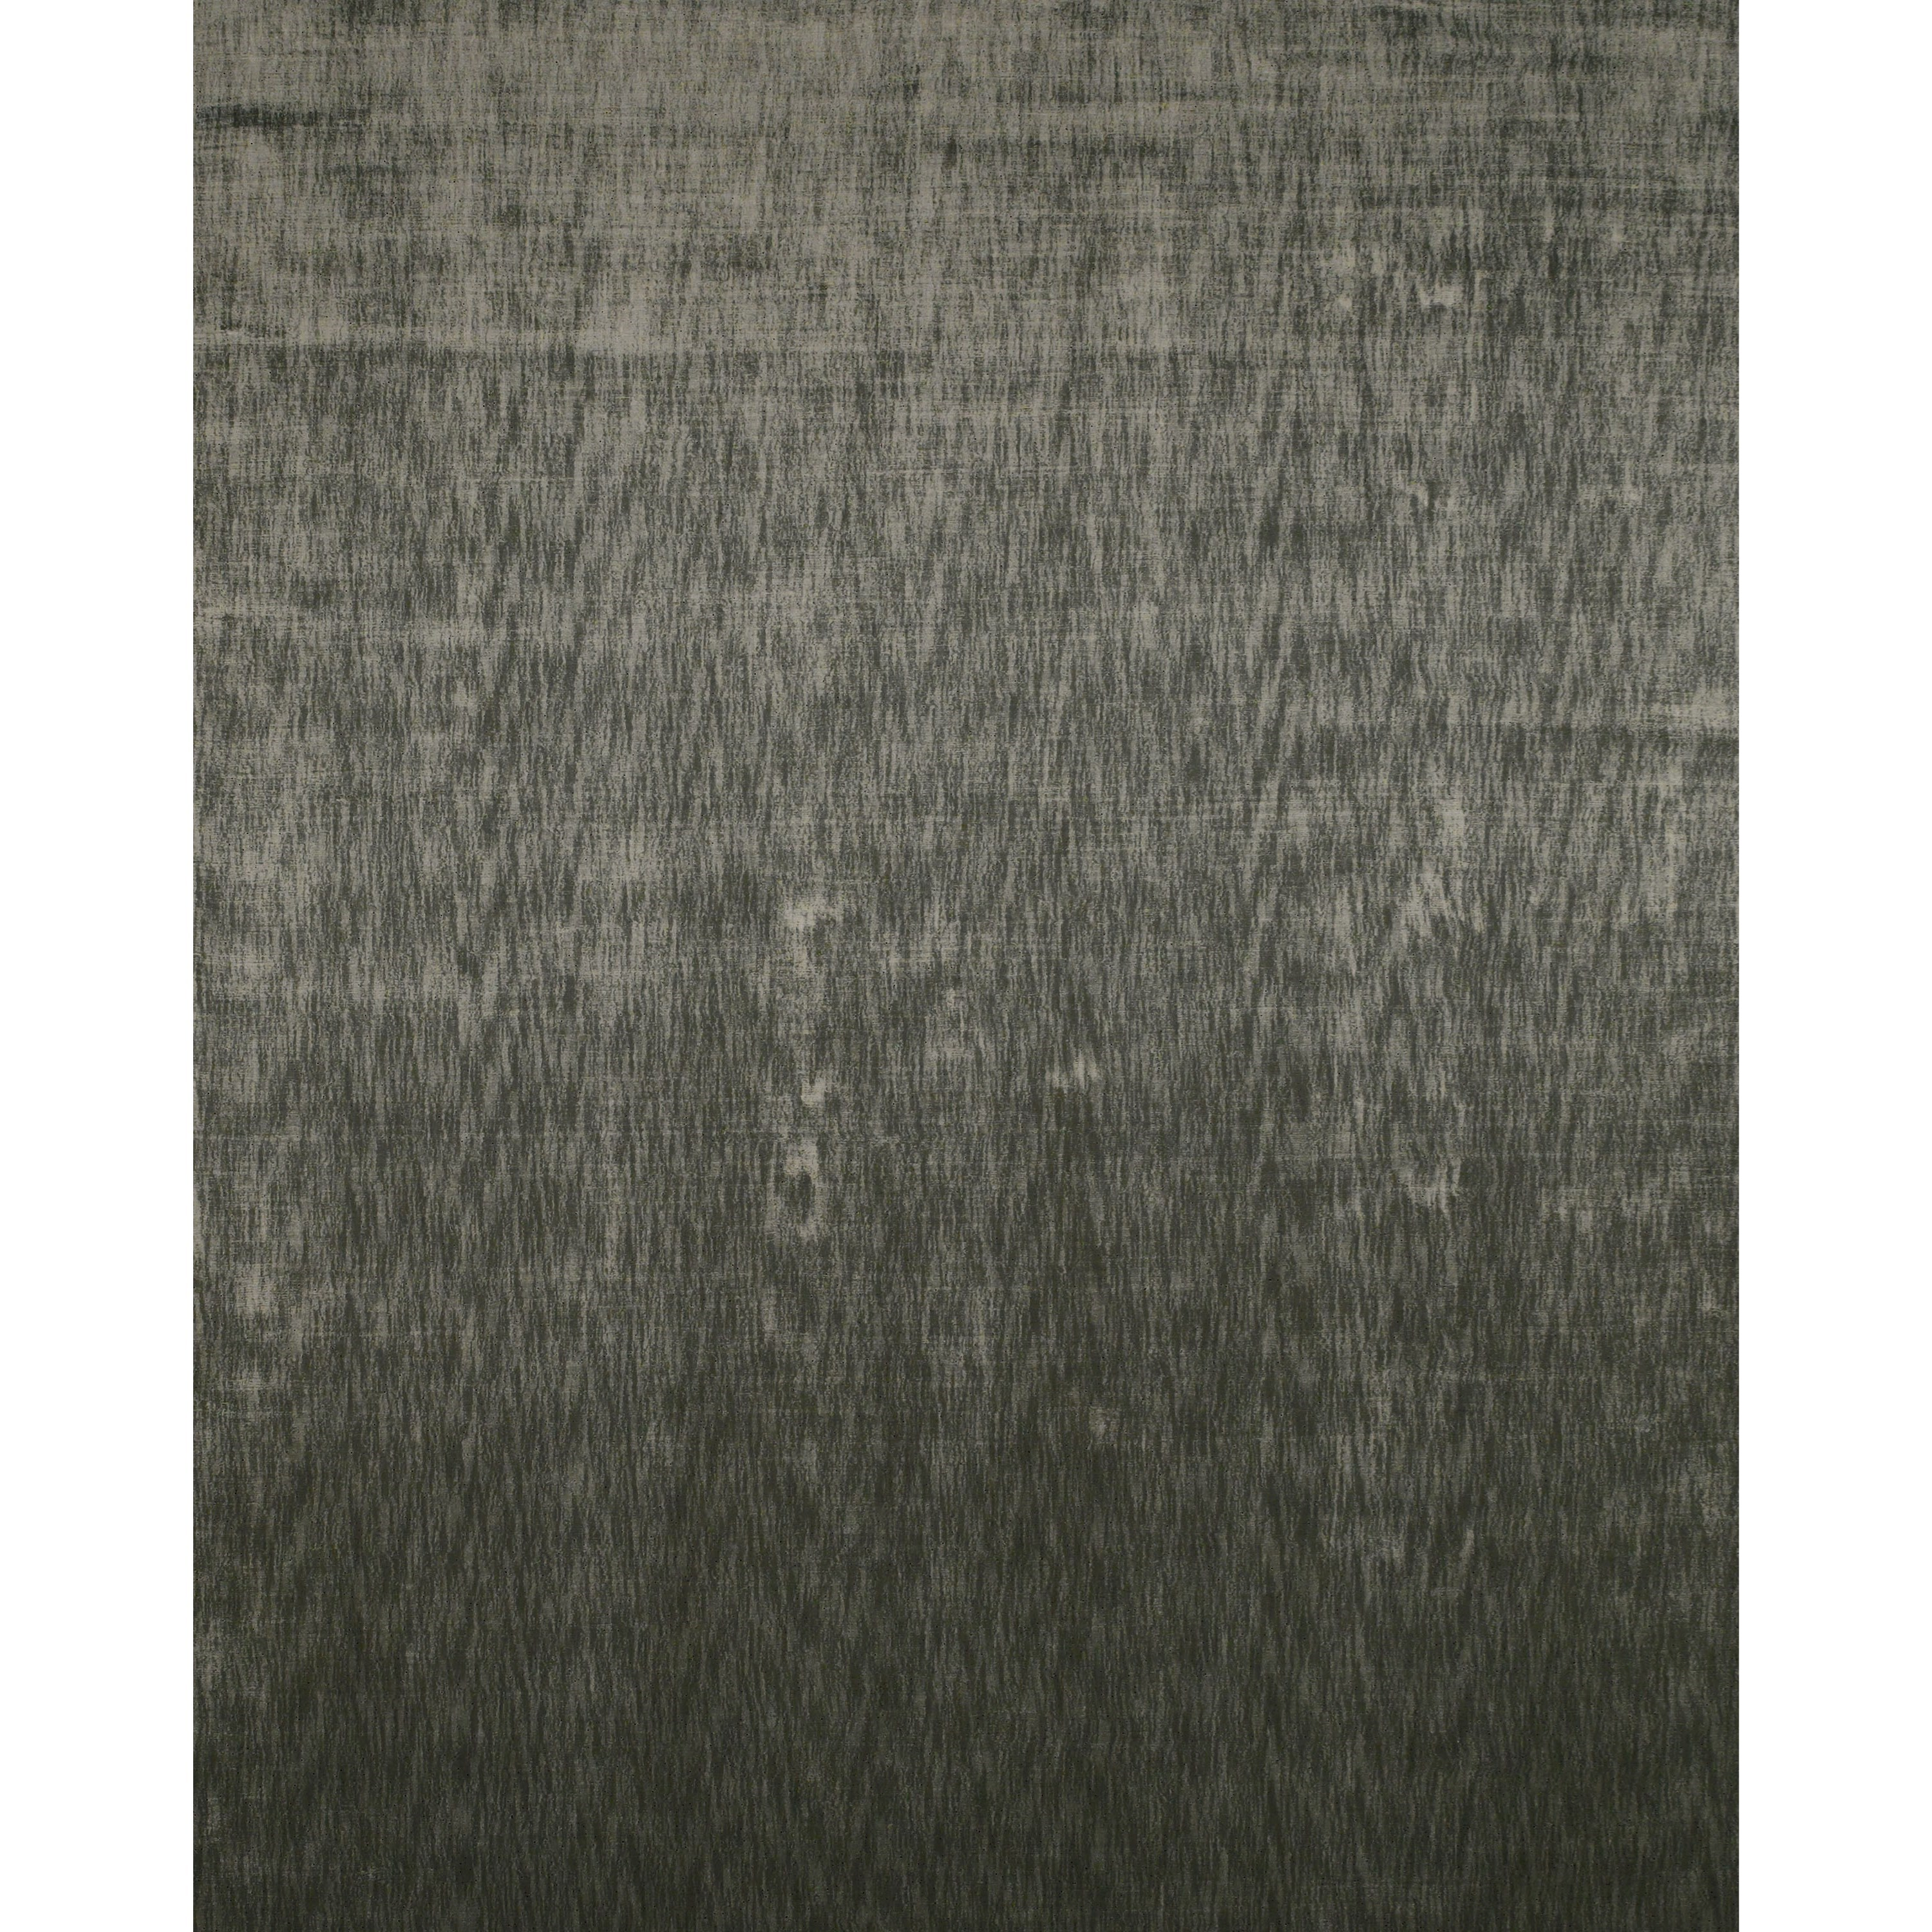 Marlowe Smoke 4' x 6' Area Rug by Feizy Rugs at Jacksonville Furniture Mart